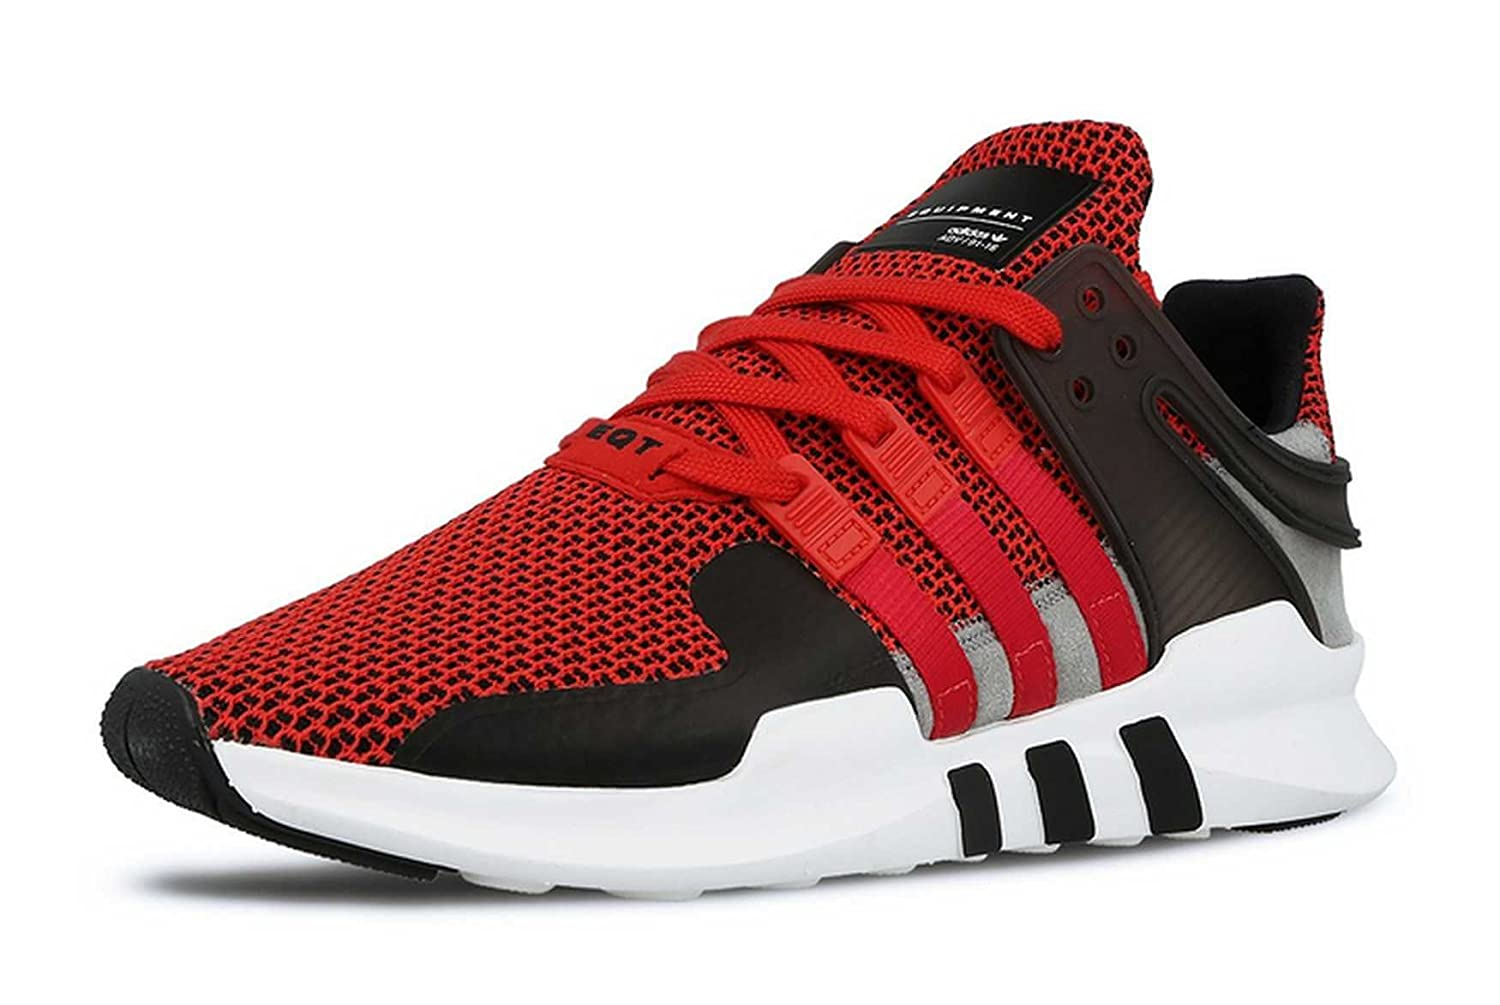 the best attitude 6500d 43a96 adidas Equipment Support ADV, Collegiate red/Black/Vintage ...